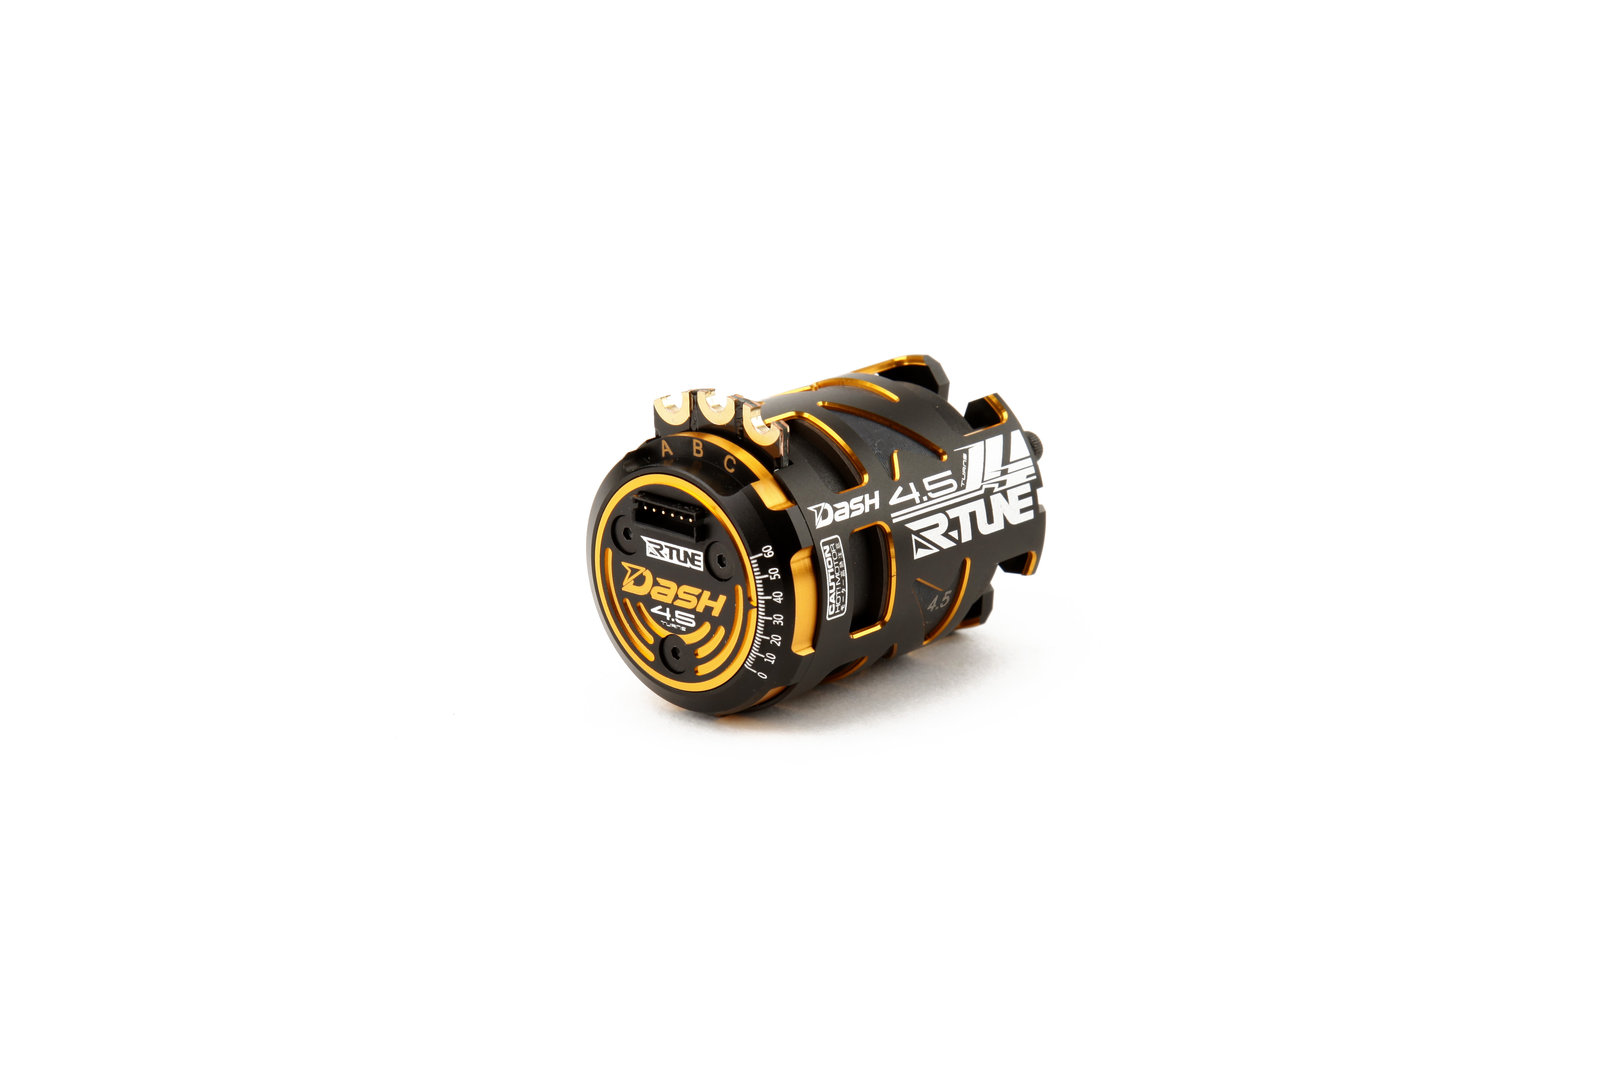 DASH DA-740085 - Dash R-Tune 540 Sensored Brushless Motor 8.5T